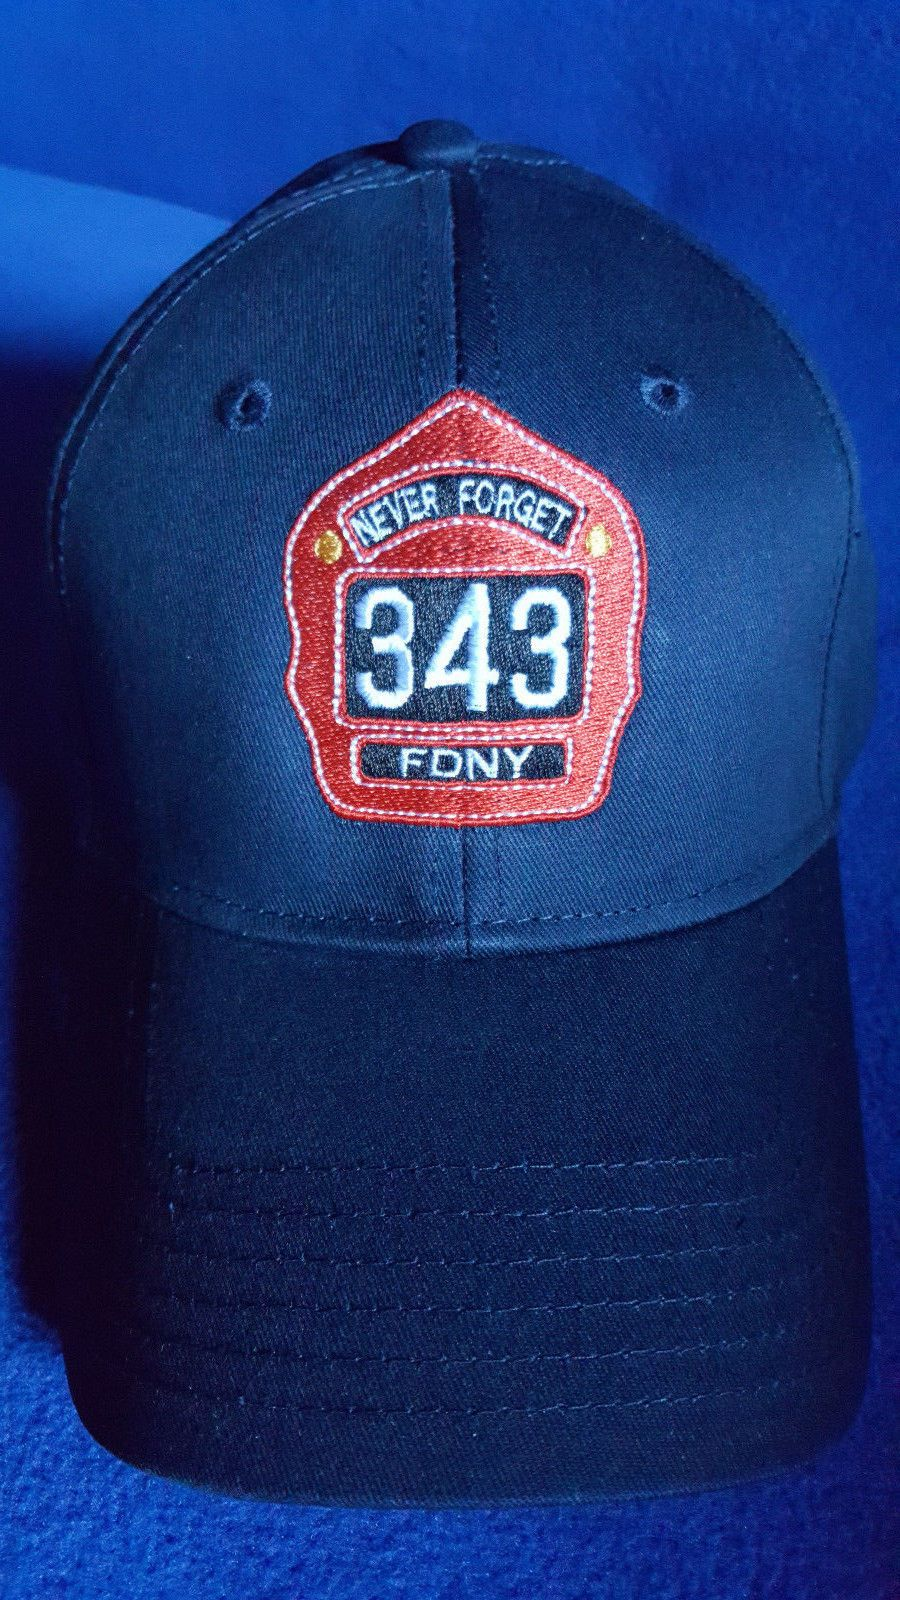 000a0e989e5 343 Leather Helmet Shield Embroidered Flexfit Hat Fdny Never Forget  Firefighter